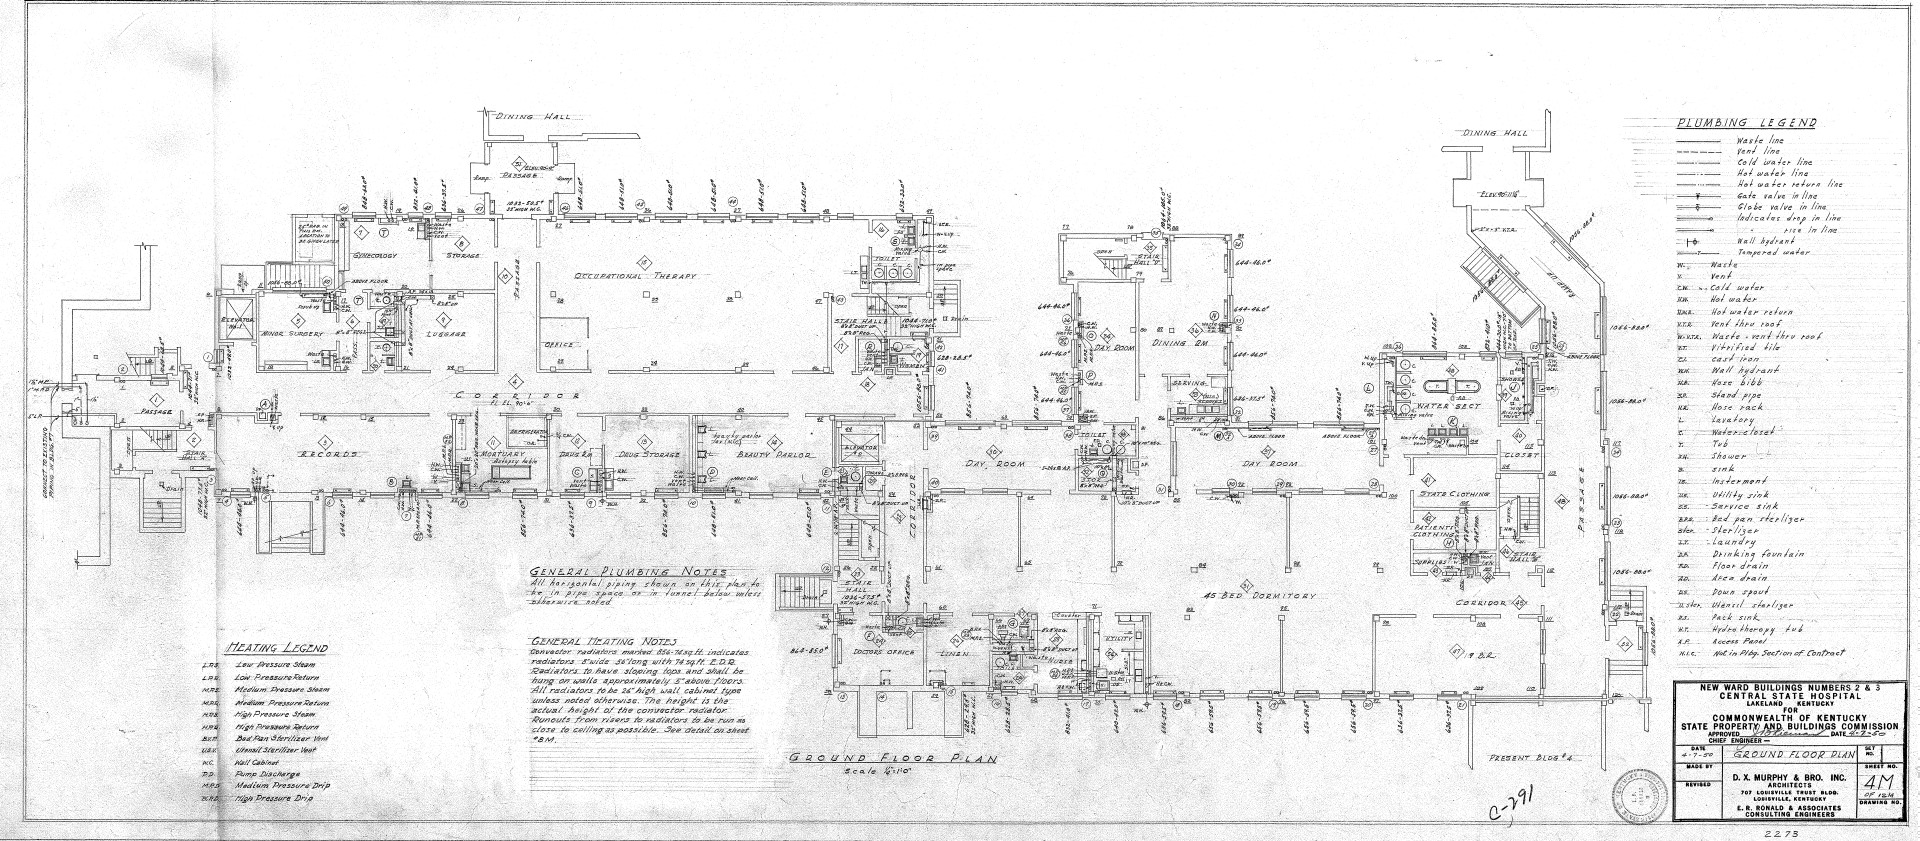 Csh blueprints kentucky historic institutions malvernweather Images